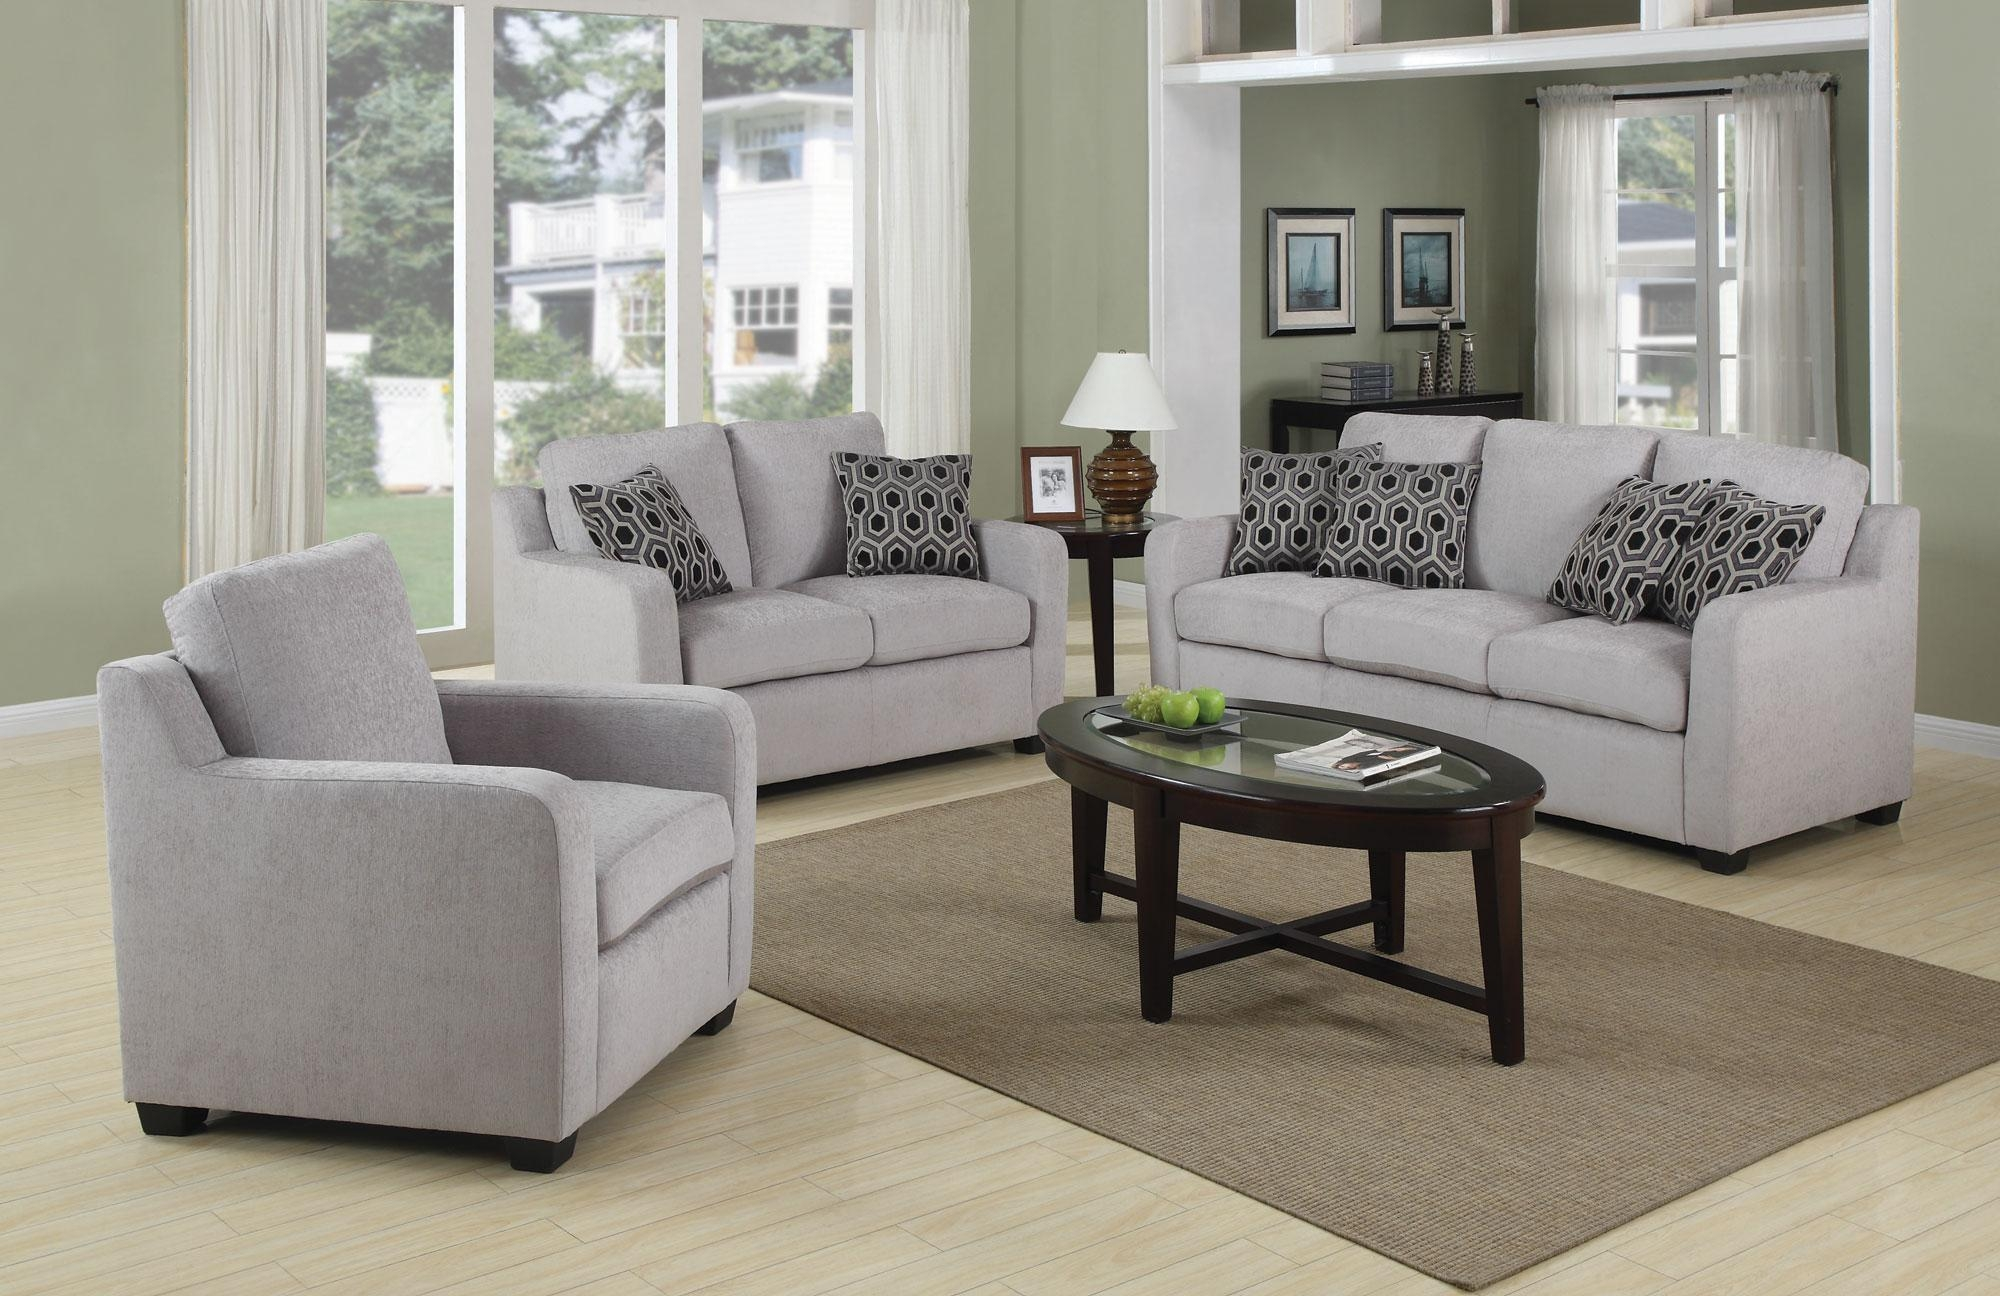 Sofas Center : Living Room Dark Greyofas With Wall Paint Intended For Blue Grey Sofas (Image 19 of 20)